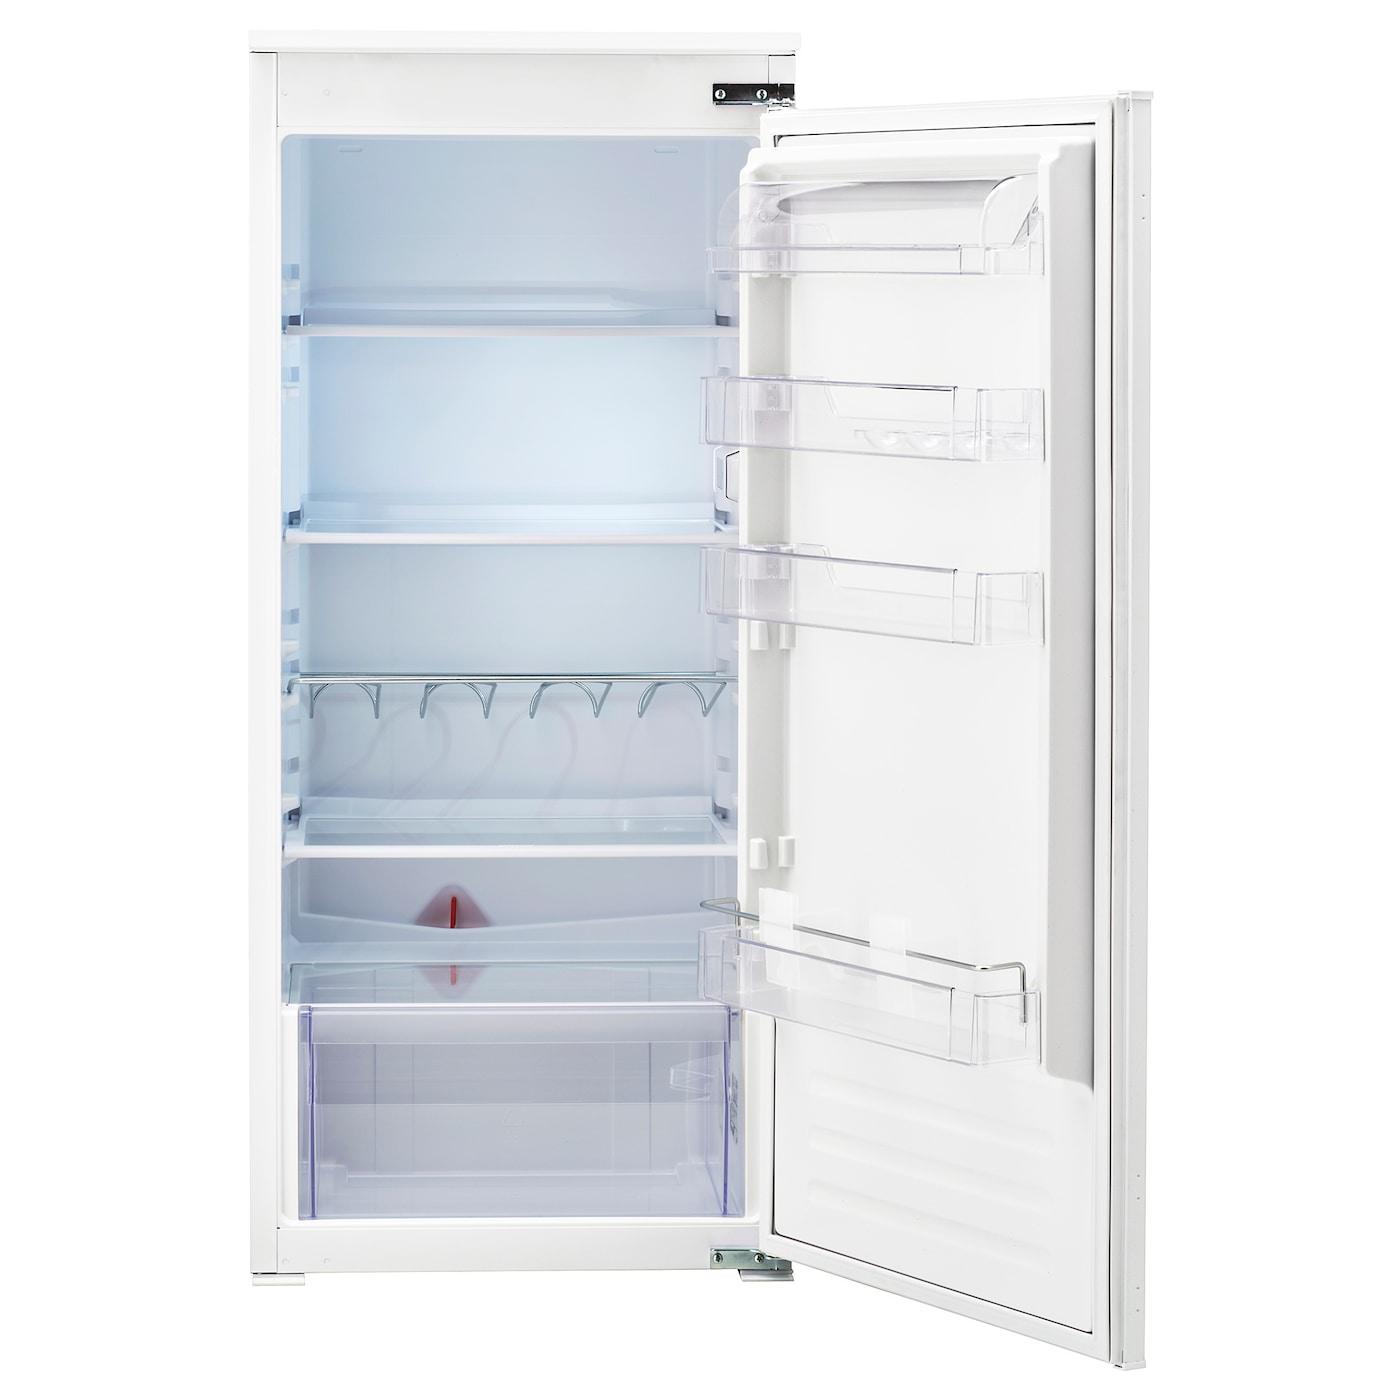 Installer Frigo Encastrable Ikea avkyld réfrigérateur encastrable a+ - blanc 209 l